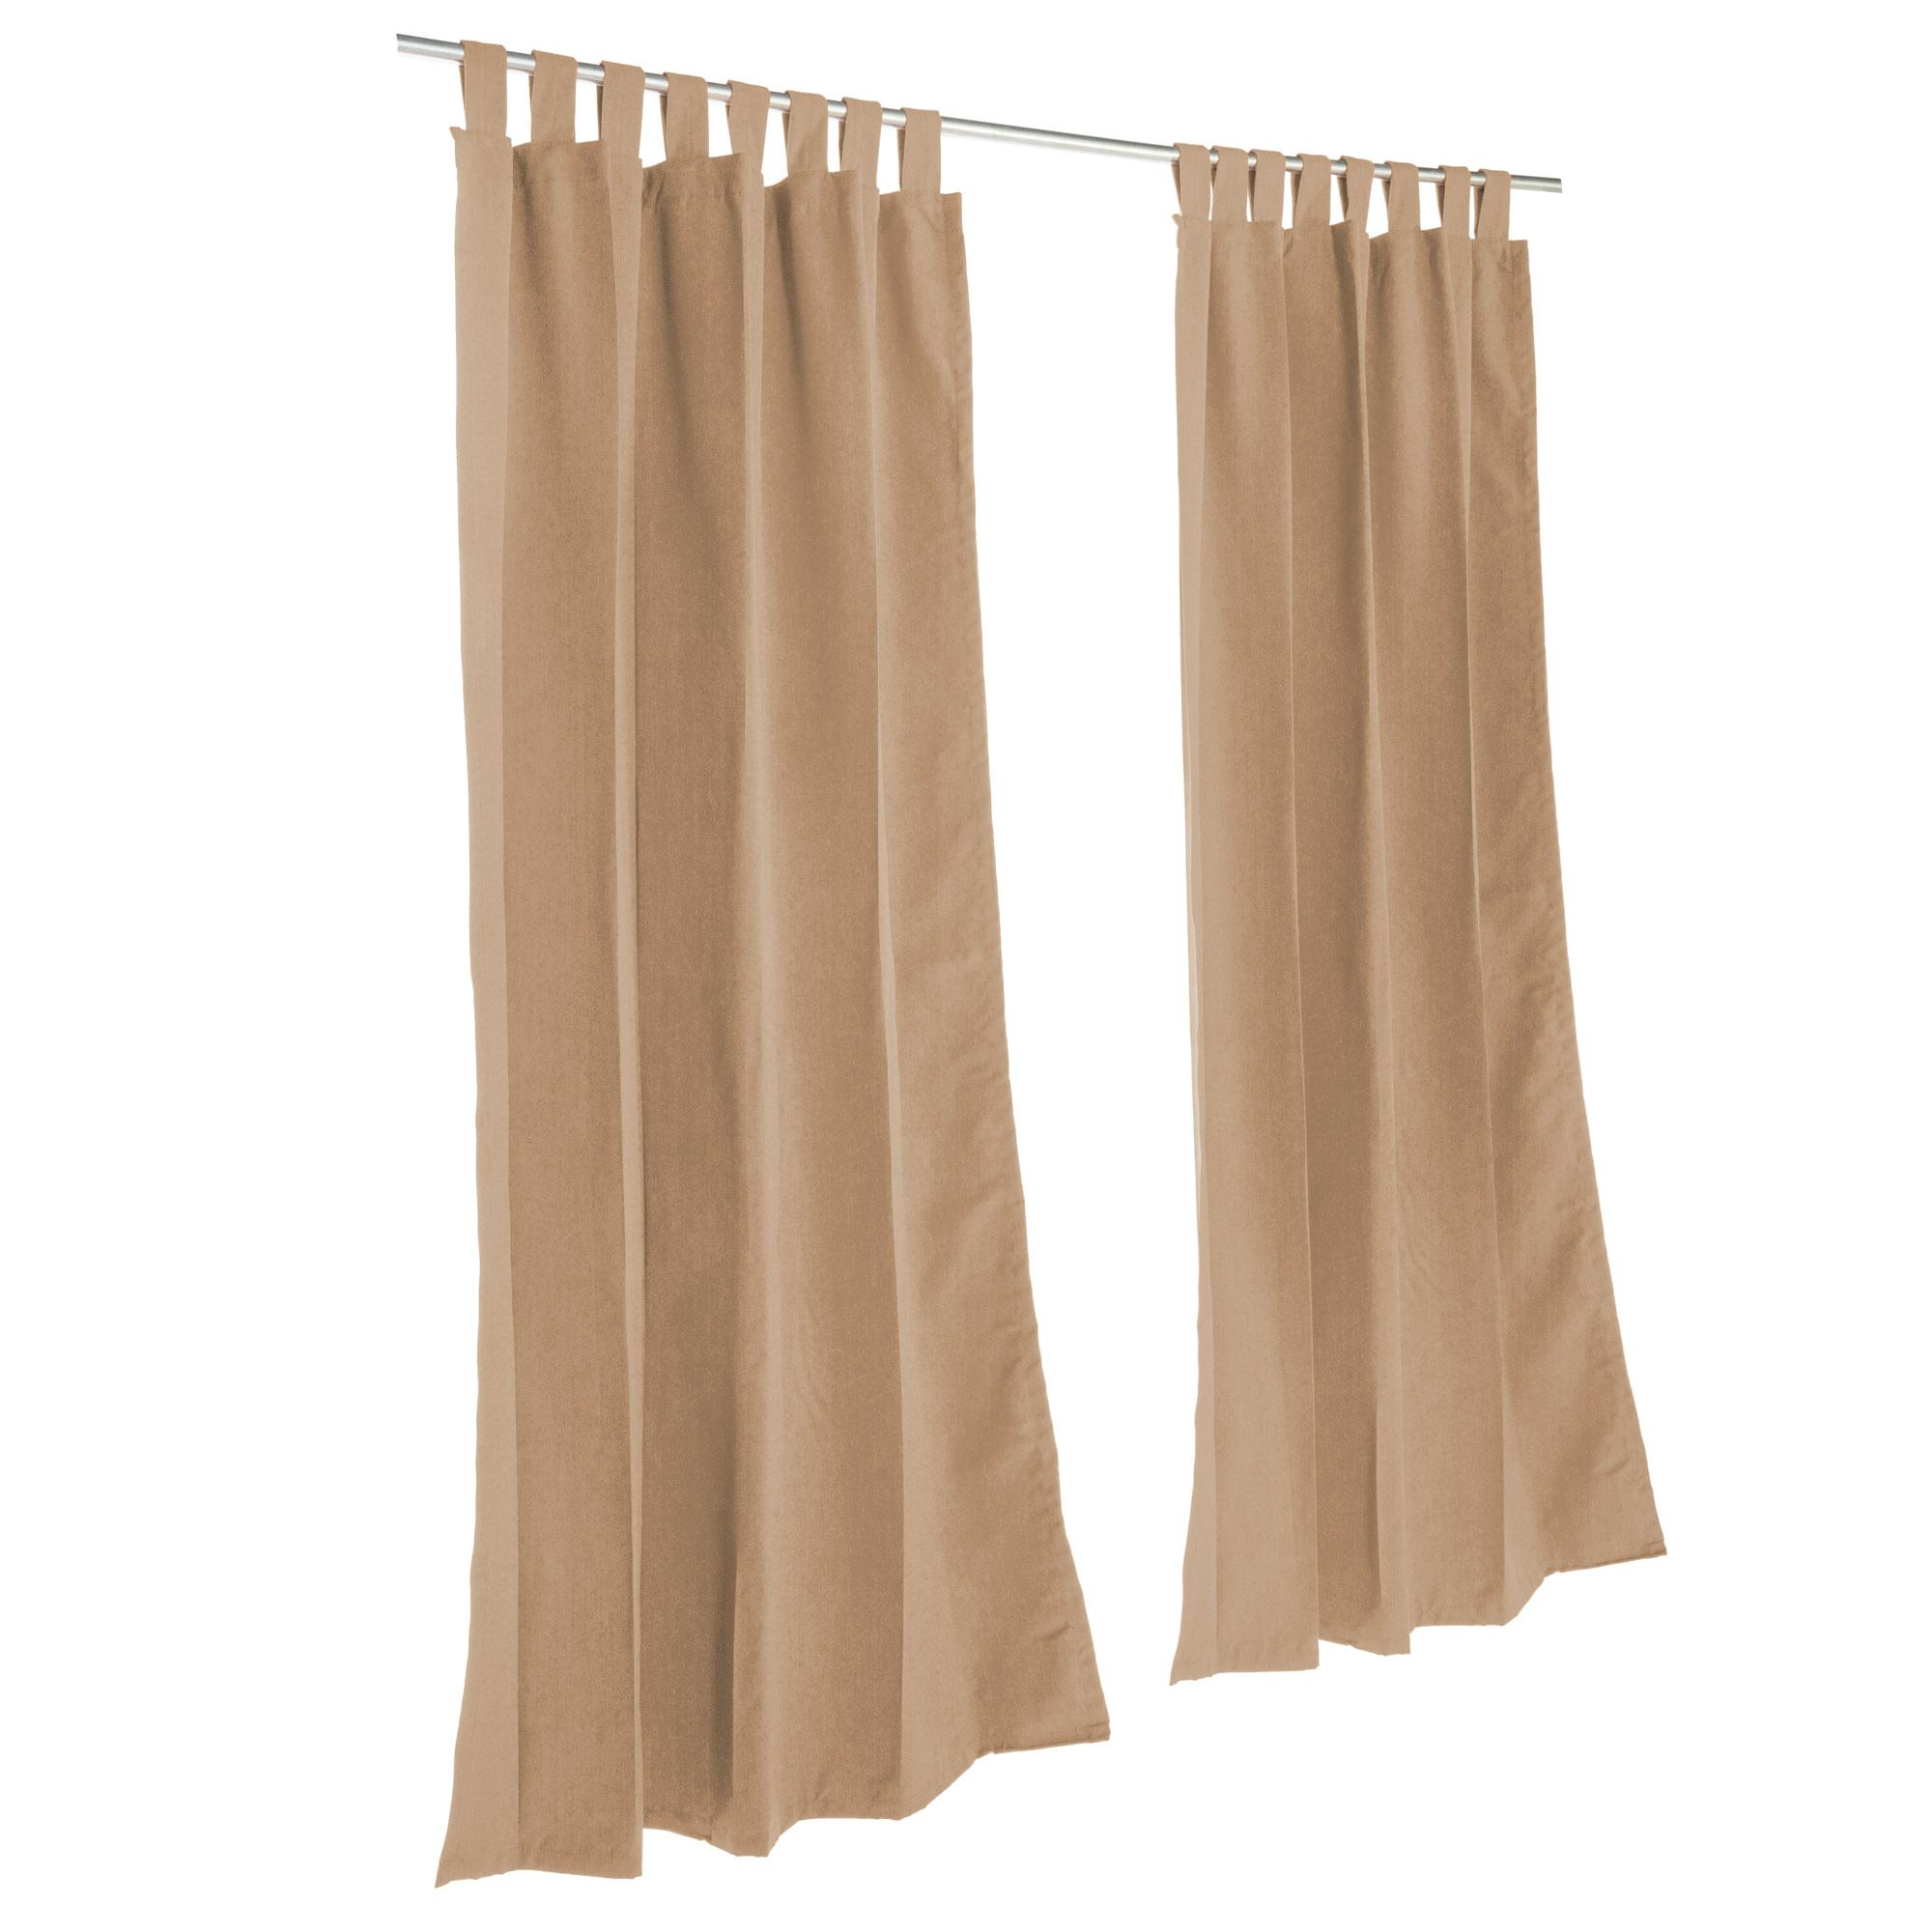 Canvas Cocoa Sunbrella Outdoor Curtain With Tabs by Essentials by DFO